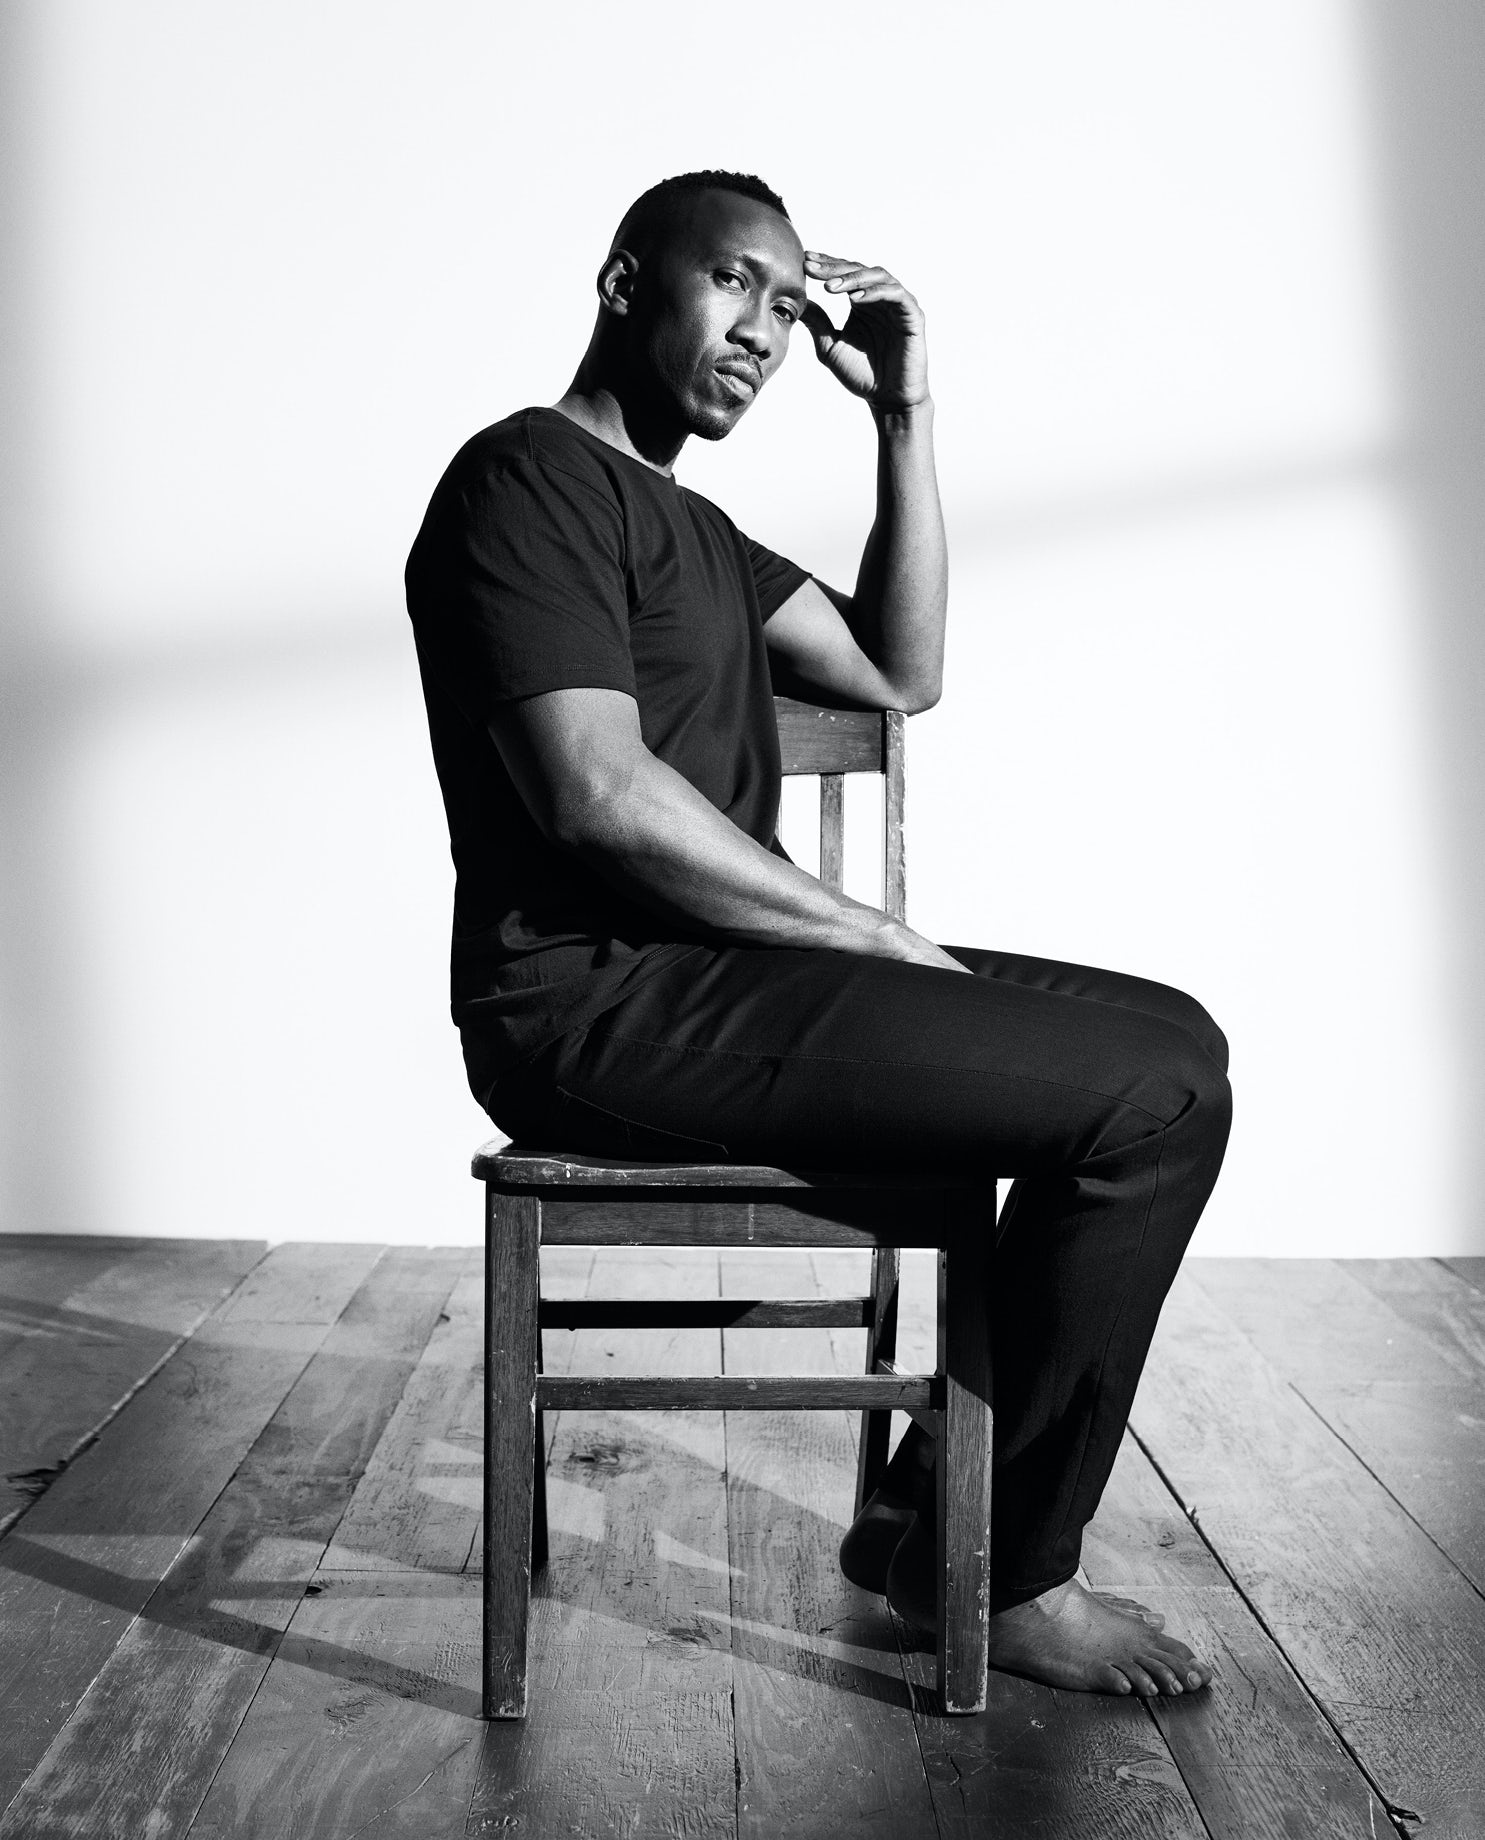 Moonlight actor Mahershala Ali stars in Calvin Klein's latest campaign, shot by Willy Vanderperre | Source: Courtesy